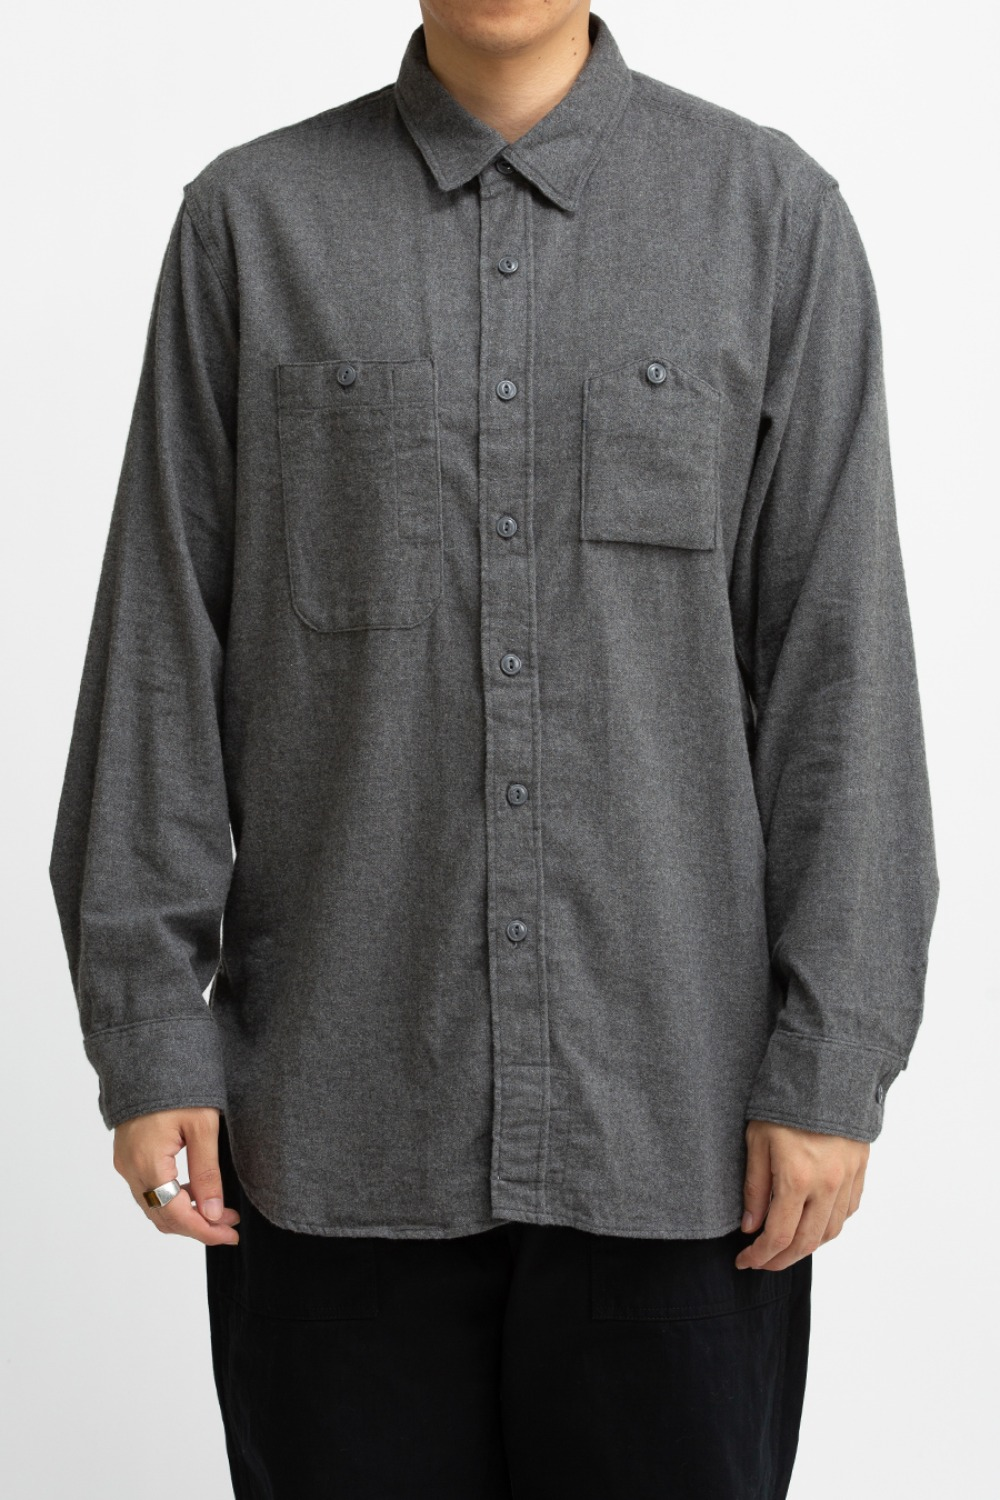 WORK SHIRT DARK GREY BRUSHED COTTON